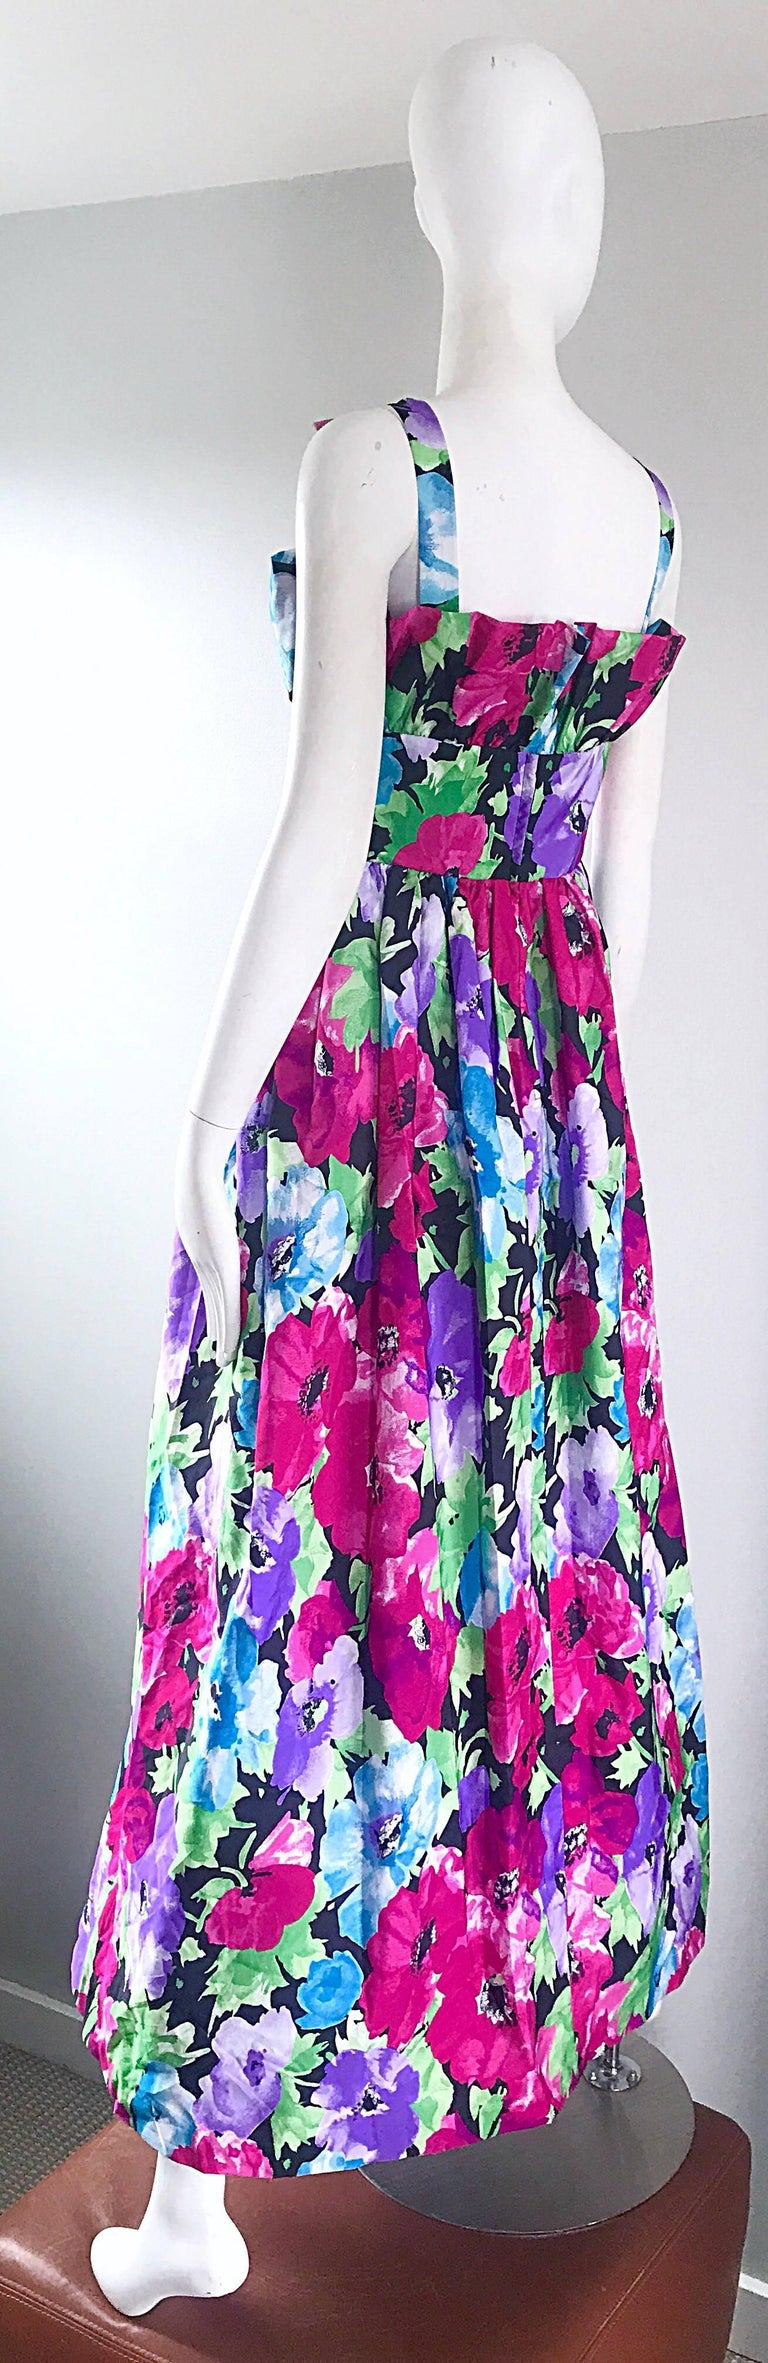 Women's Amazing Vintage Victor Costa Size 12 Tropical Hawaiian Avant Garde Maxi Dress  For Sale